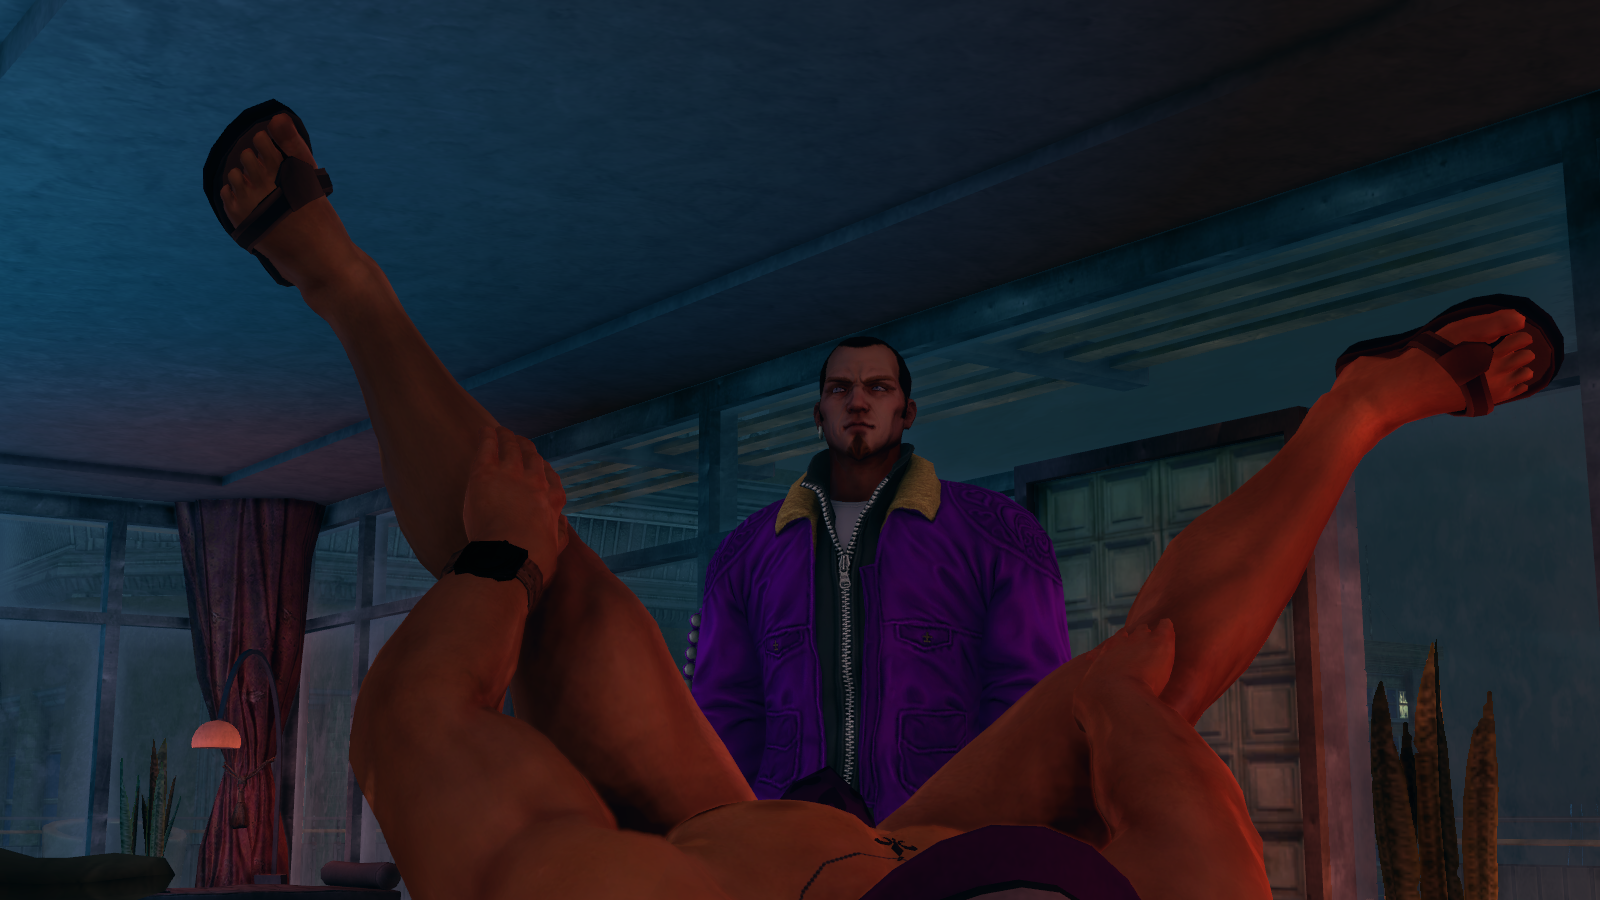 Saints row 2 porn naked strippers sexual picture